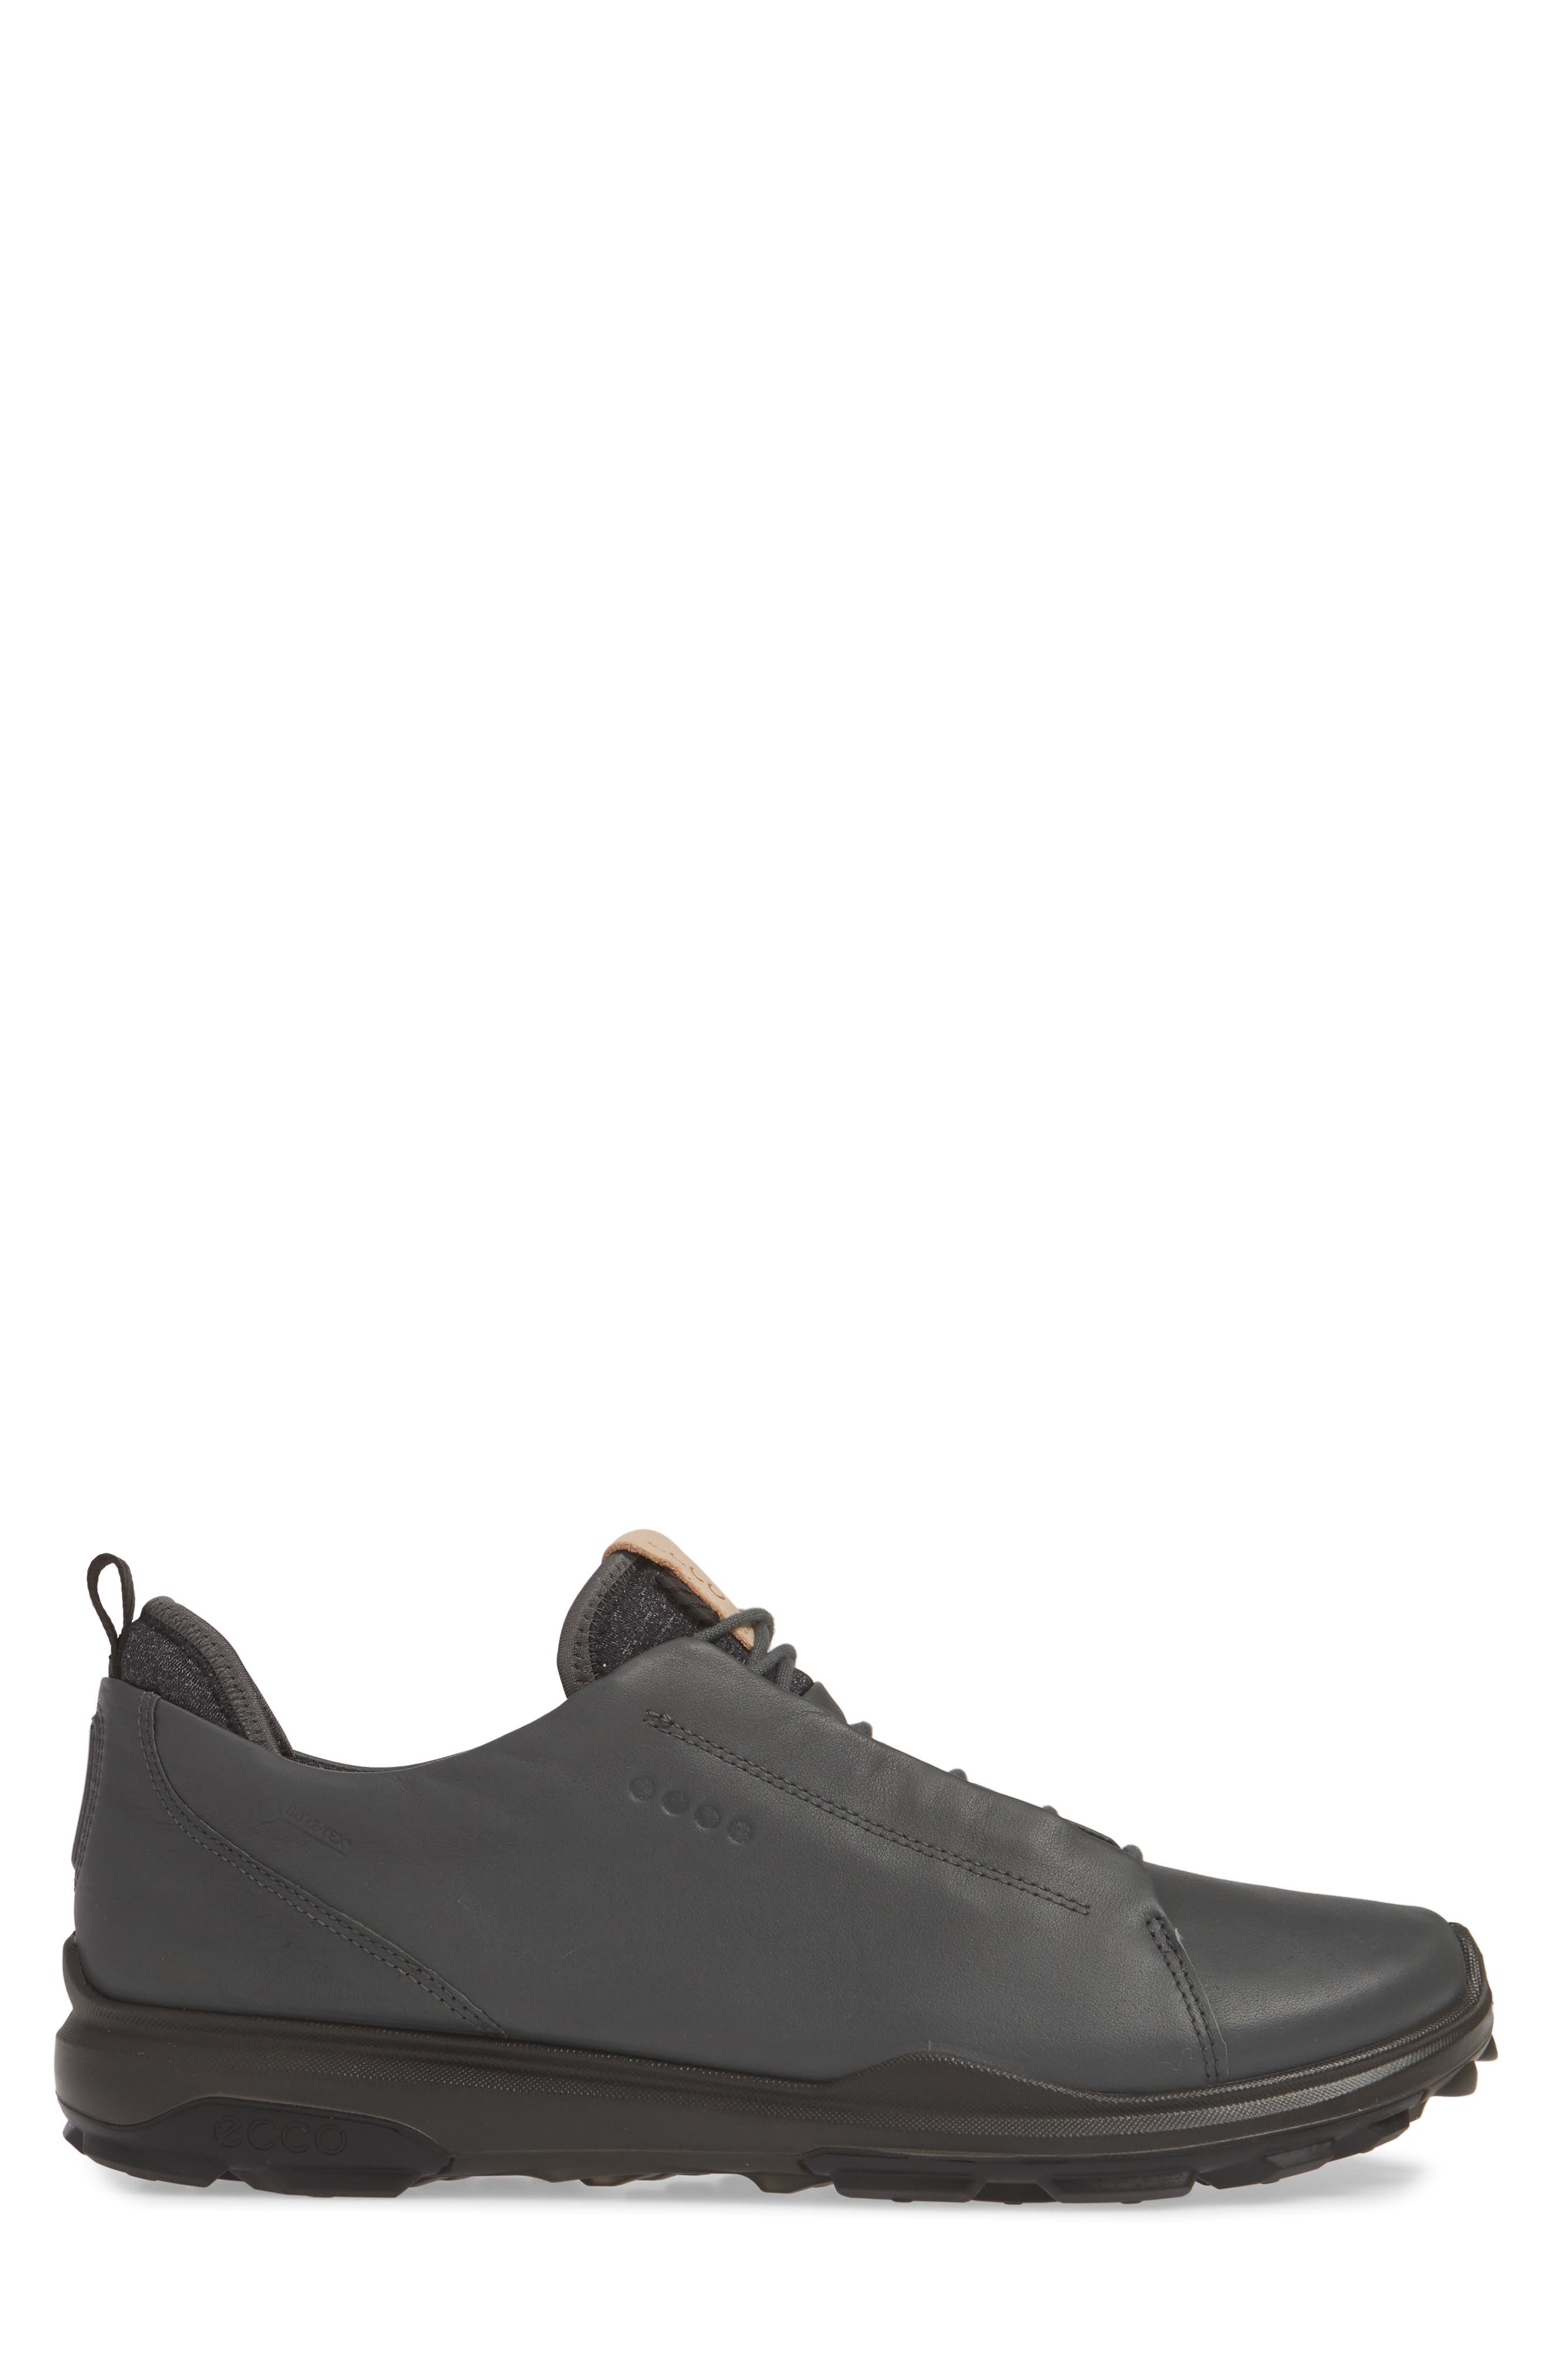 ECCO, BIOM<sup>®</sup> Hybrid 3 OL Gore-Tex<sup>®</sup> Golf Shoe, Alternate thumbnail 3, color, DARK SHADOW LEATHER